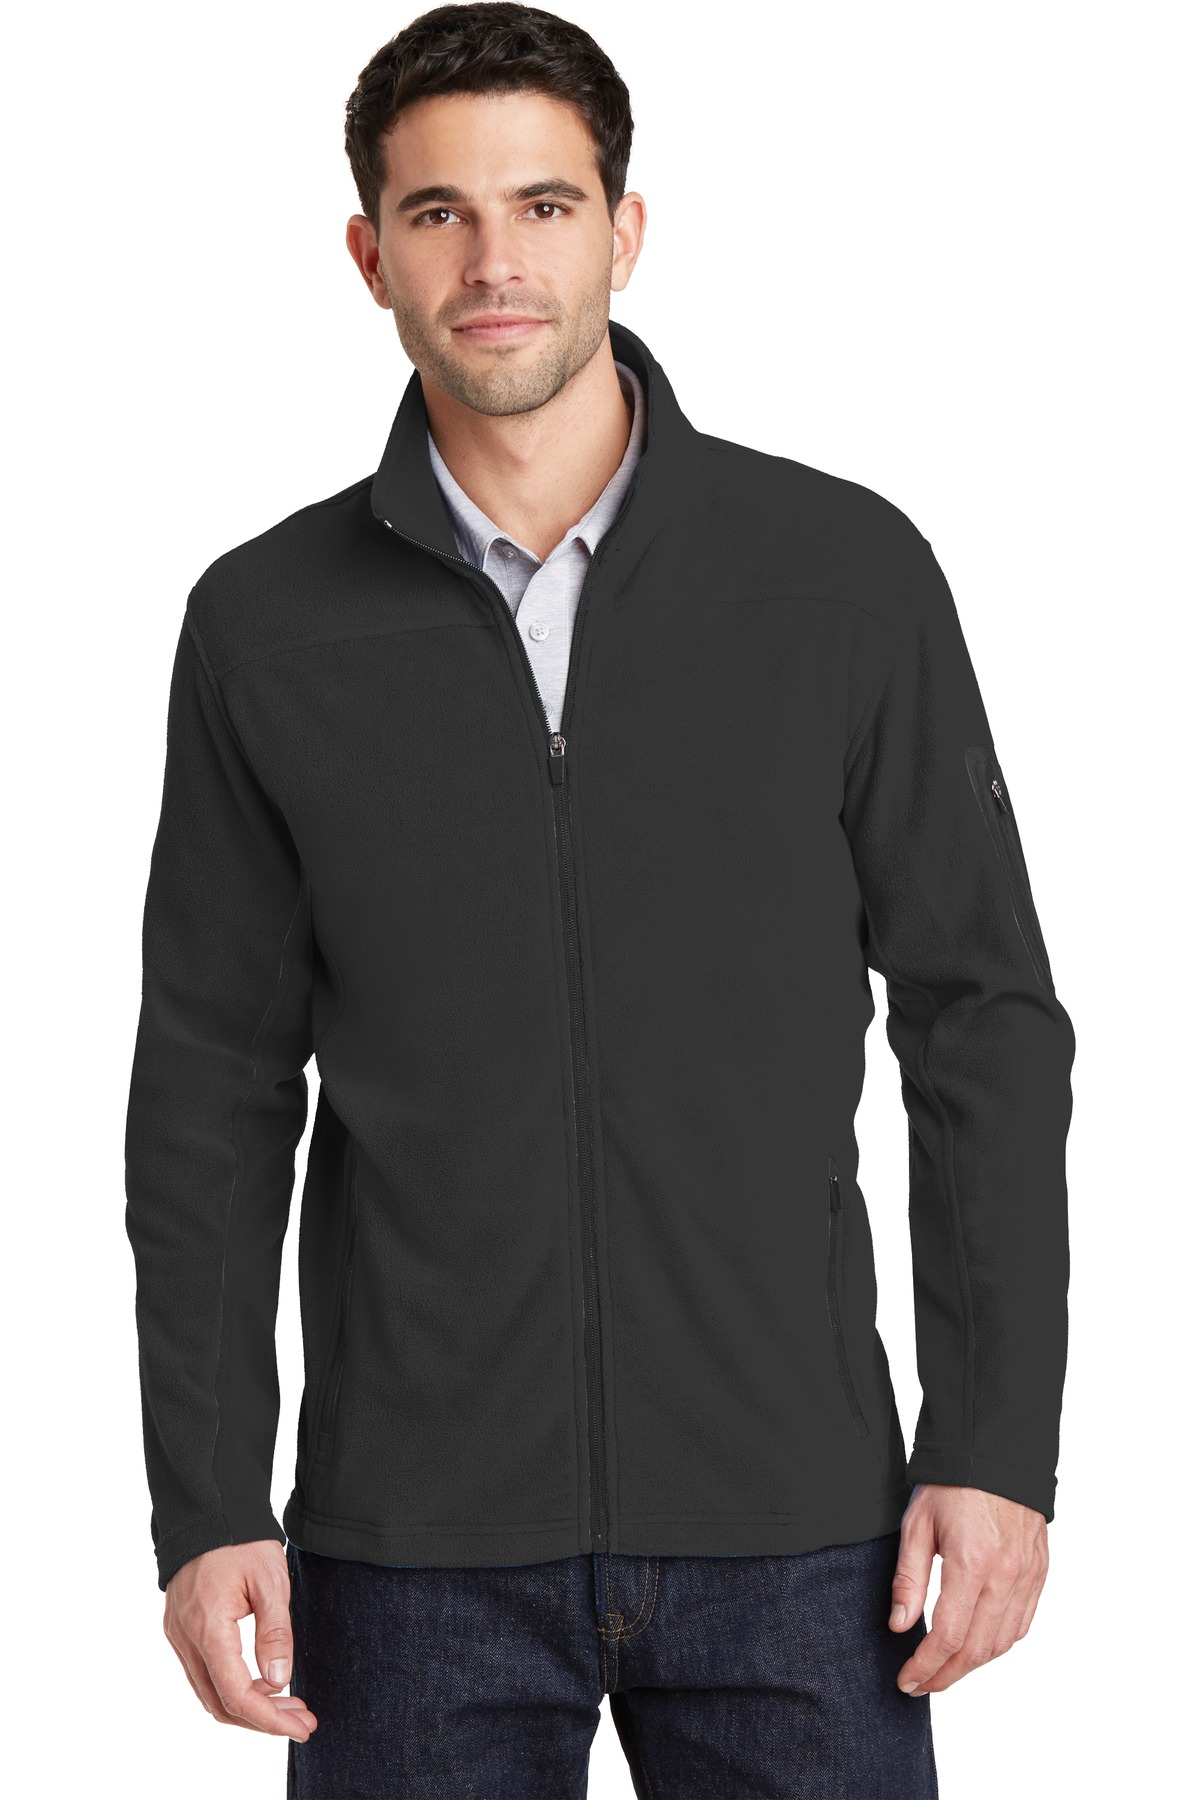 Port Authority  F233 - Summit Fleece Full-Zip Jacket